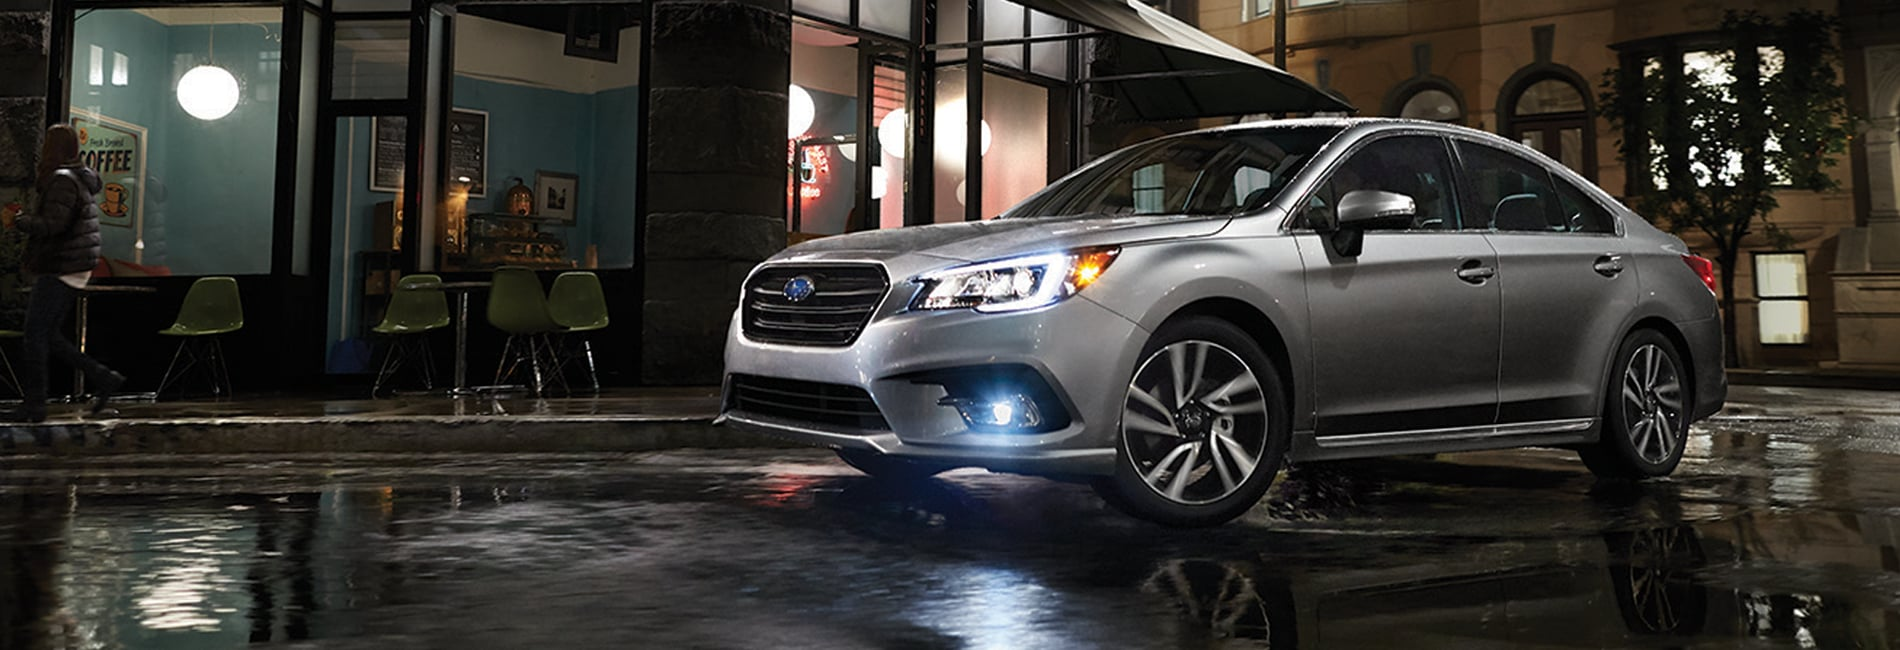 Subaru Legacy Exterior Vehicle Features